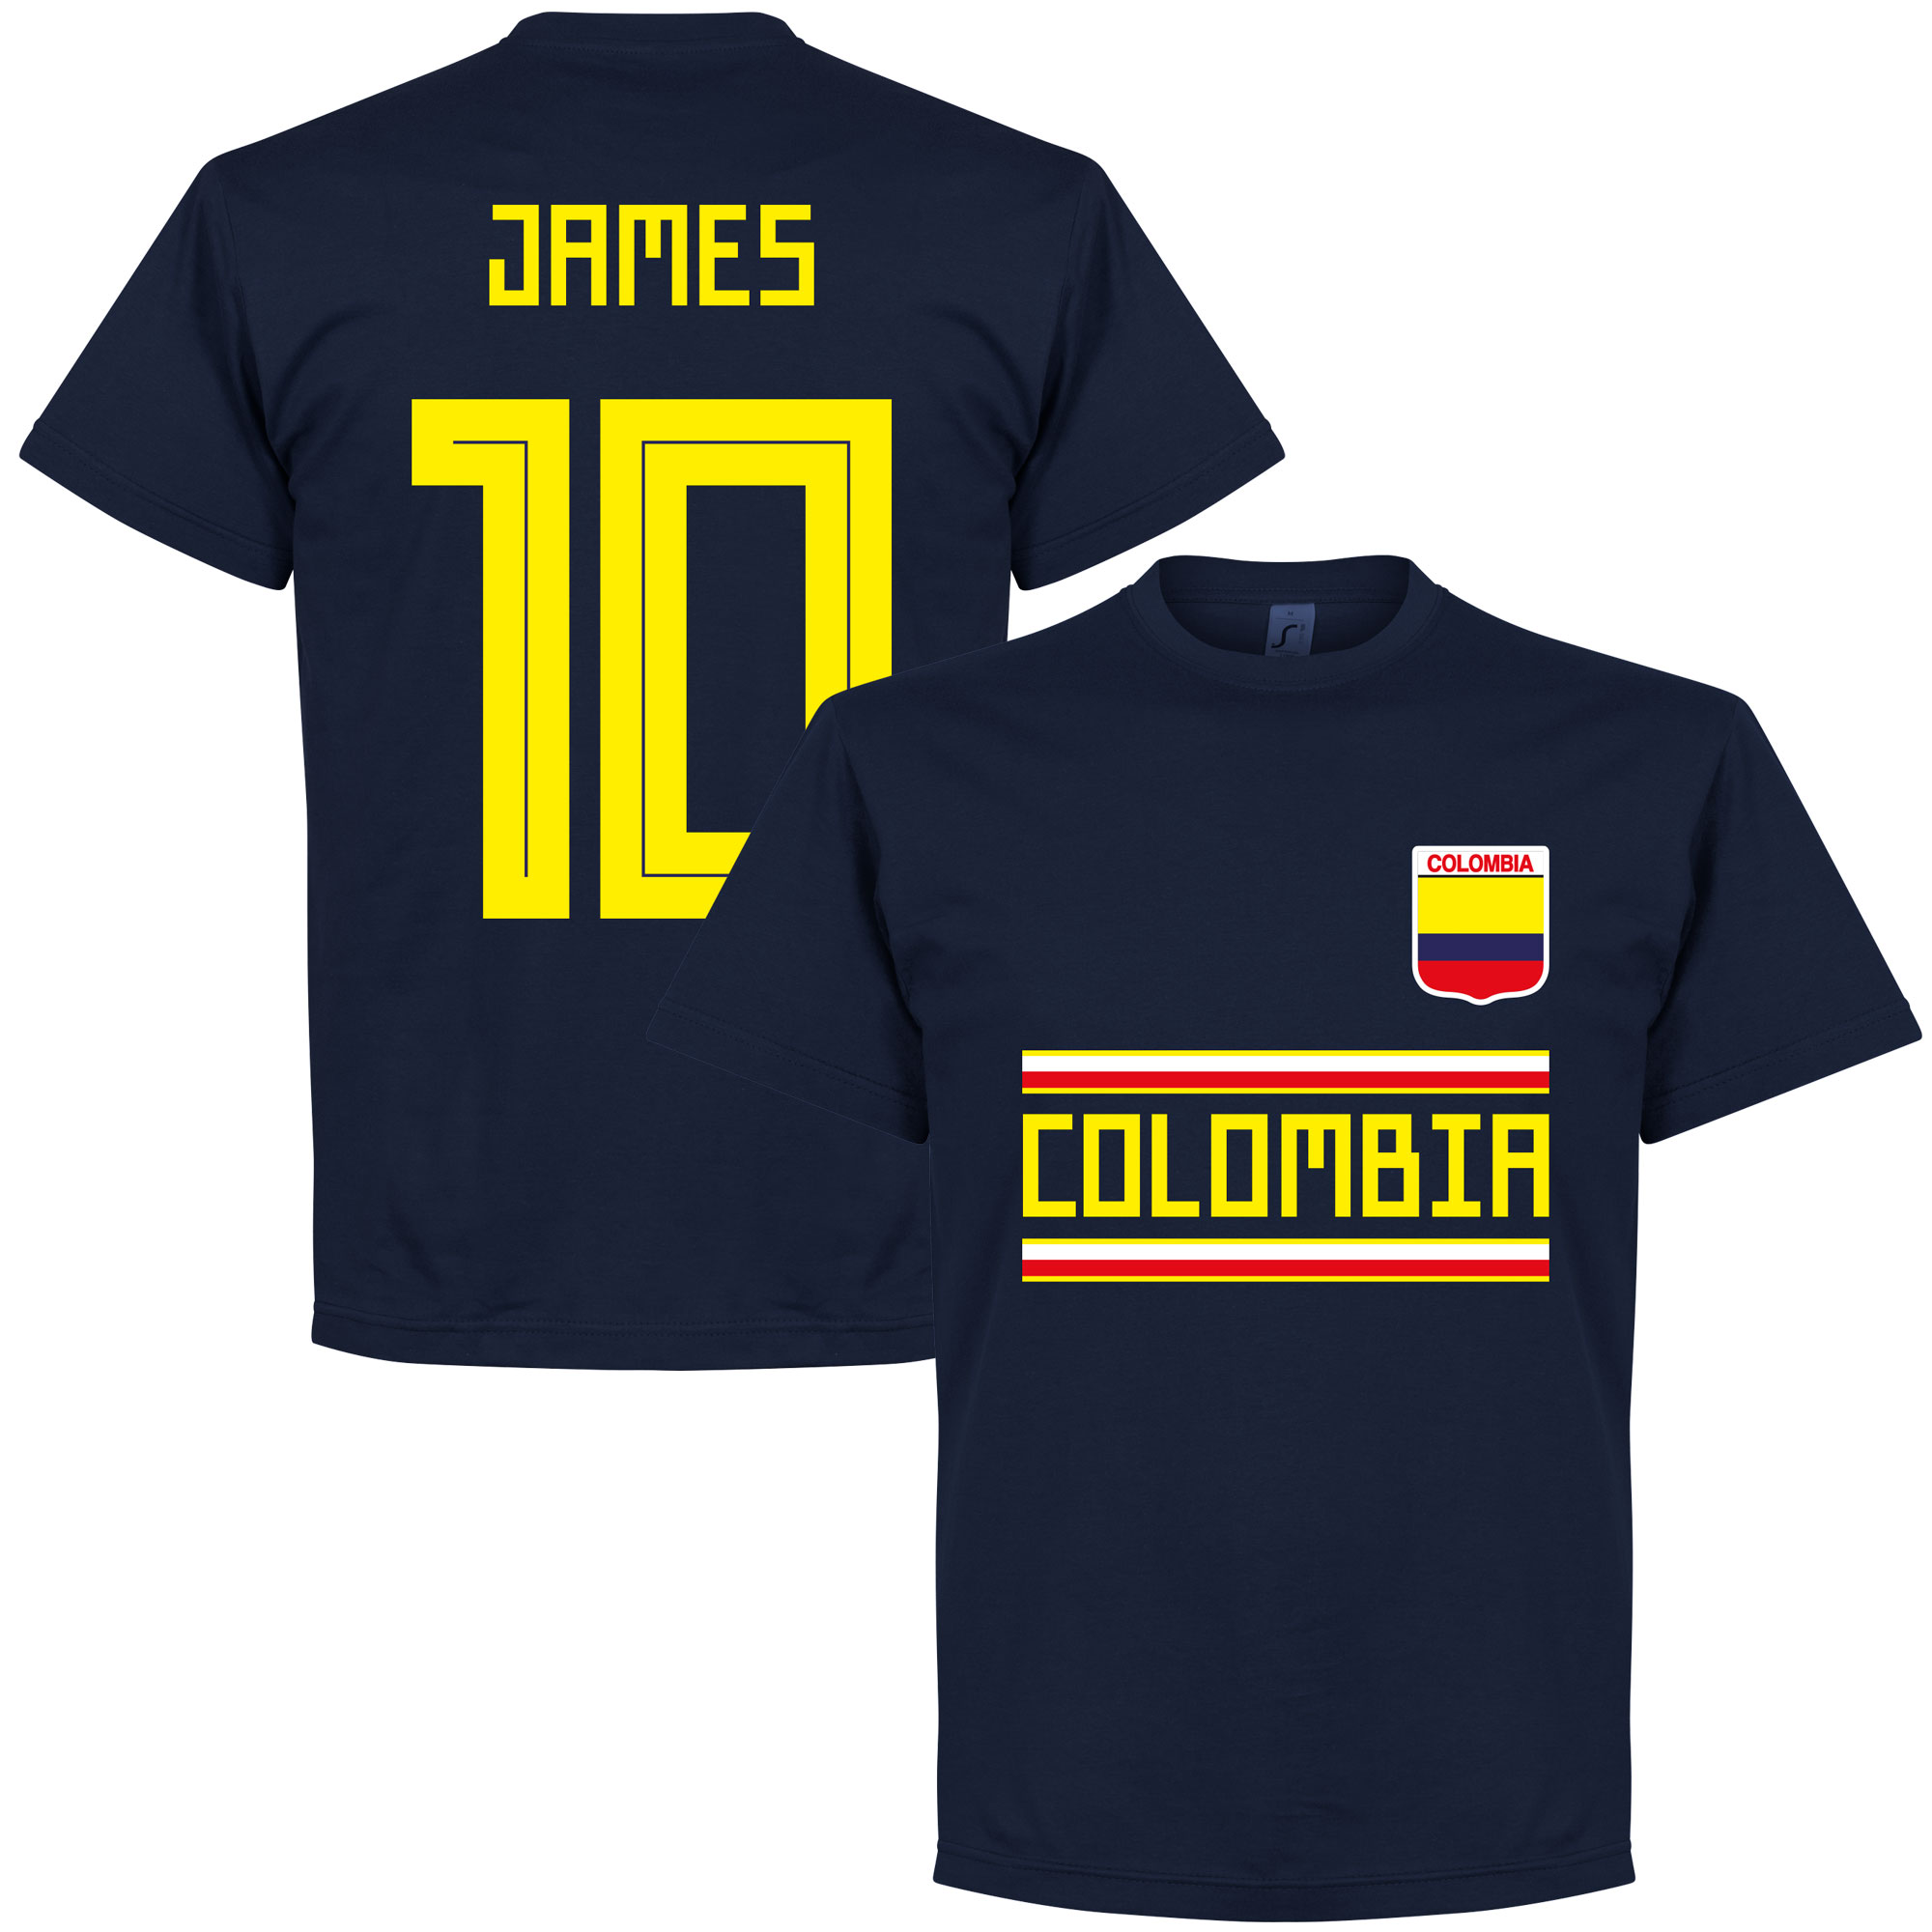 Colombia James 10 Team Tee - Navy - S